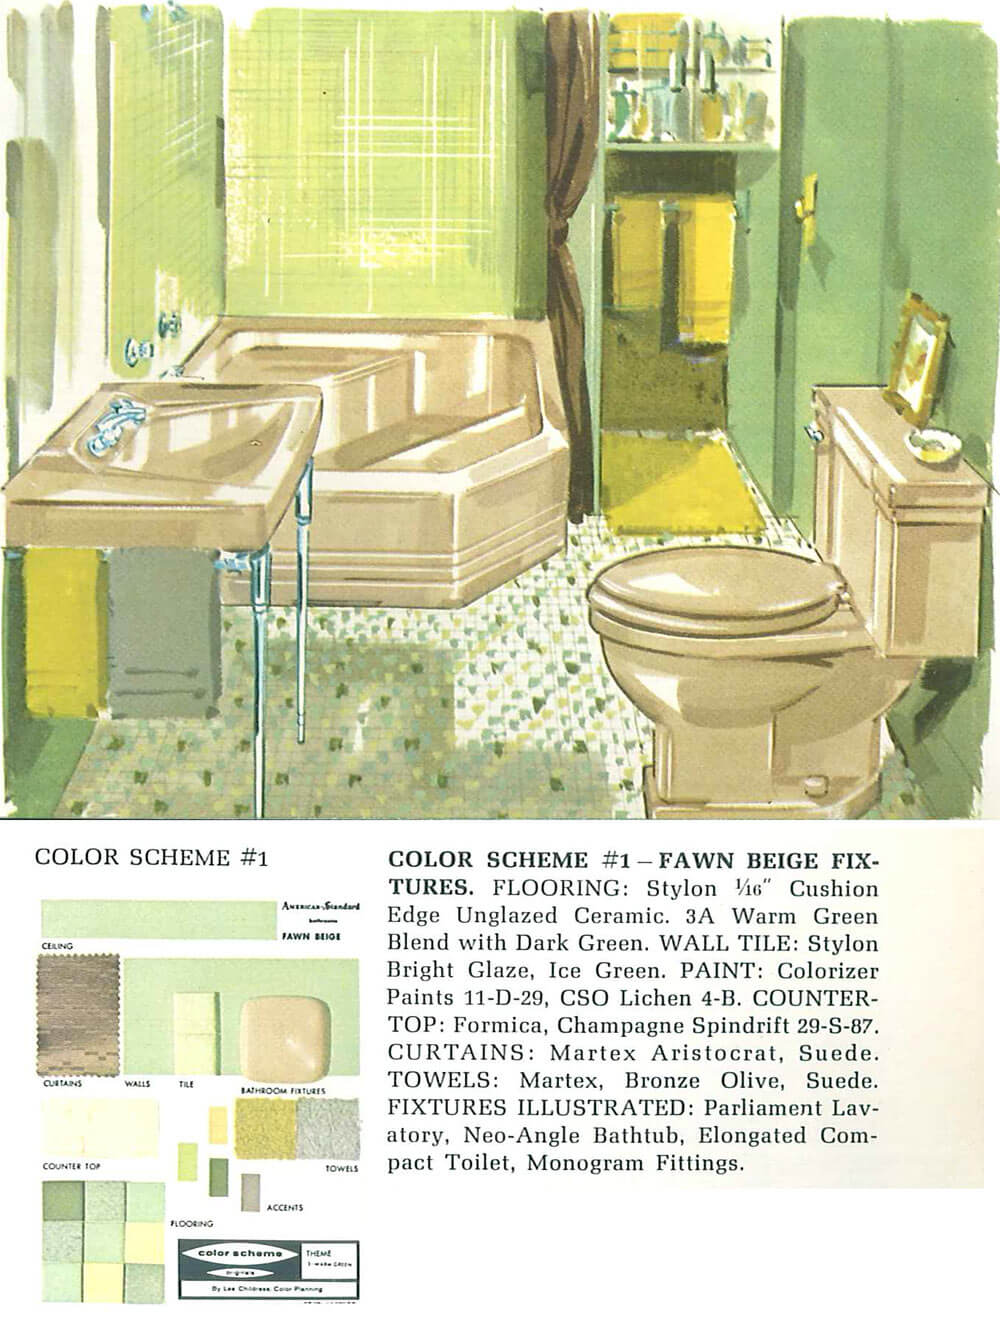 How To Decorate A Vintage Bathroom With Pink Tile Ask Home Design